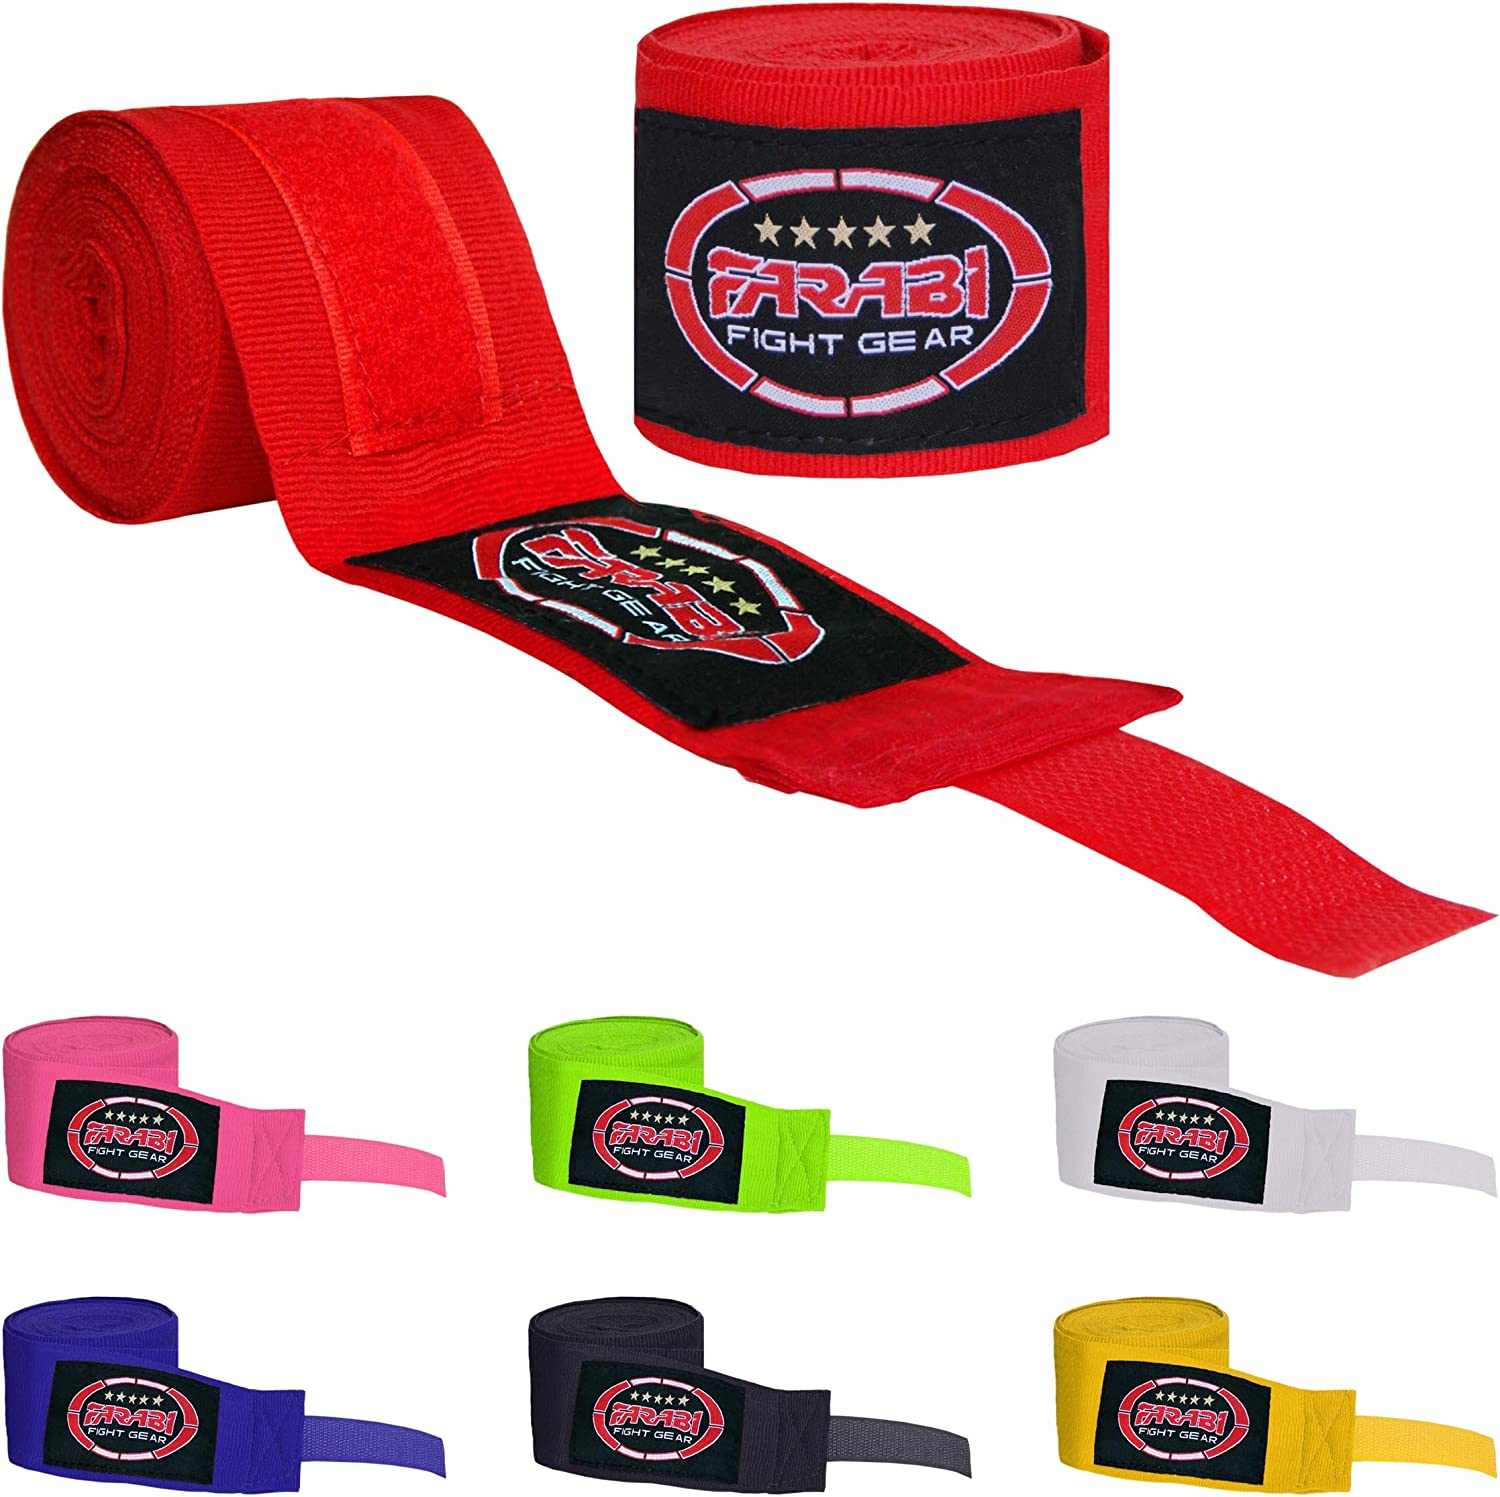 KIDS JUNIOR  HAND WRAPS WRIST SUPPORTS FOR MUAY THAI SPORTS TRAINING 1.5m